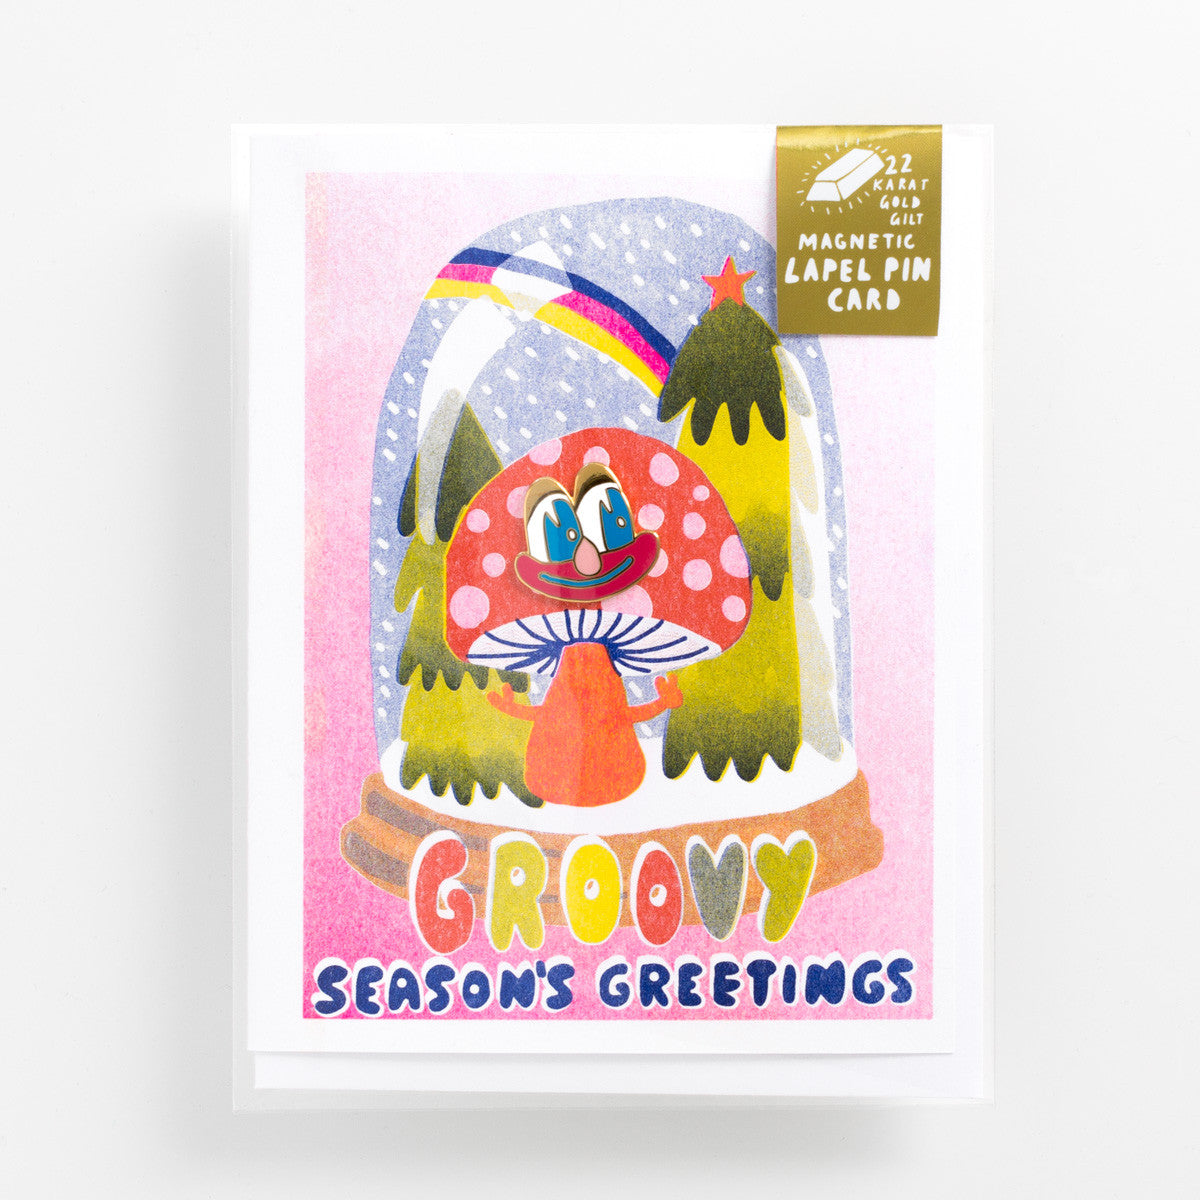 Risograph holiday greeting card with cartoon magnetic enamel lapel pin